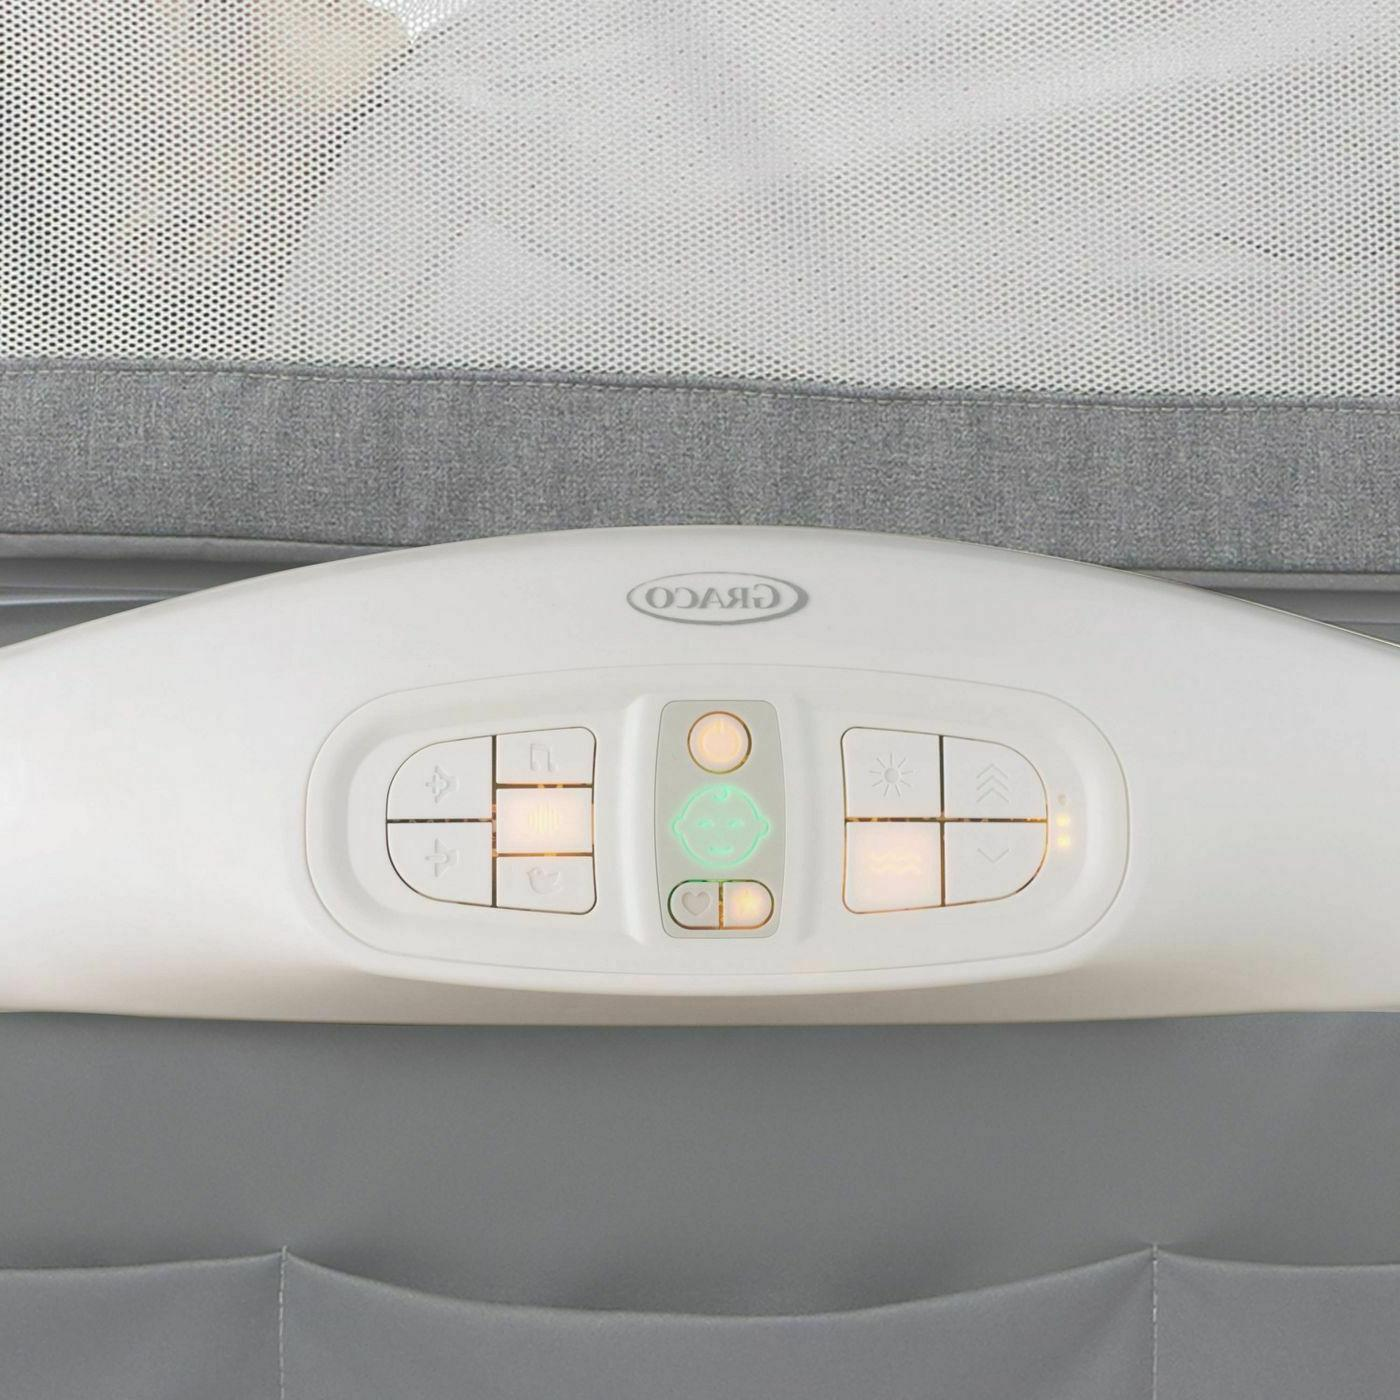 NEW Bassinet with Detection Technology, Roma